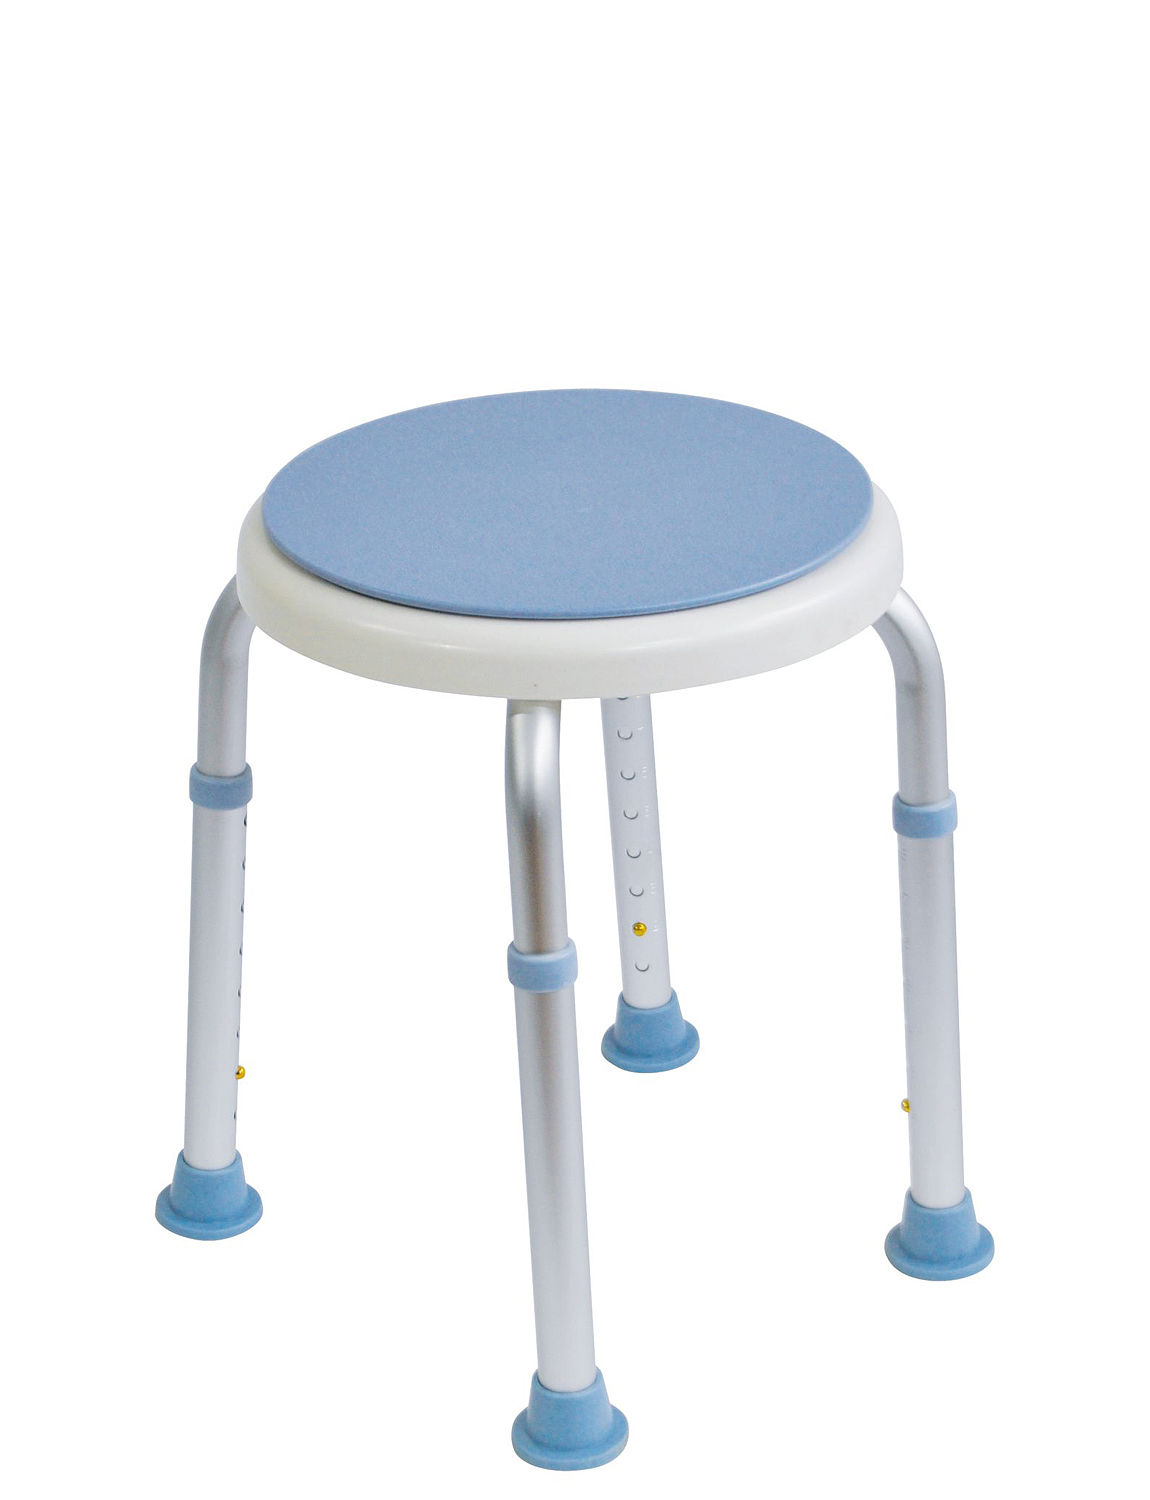 Swivel Shower Stool | Chums